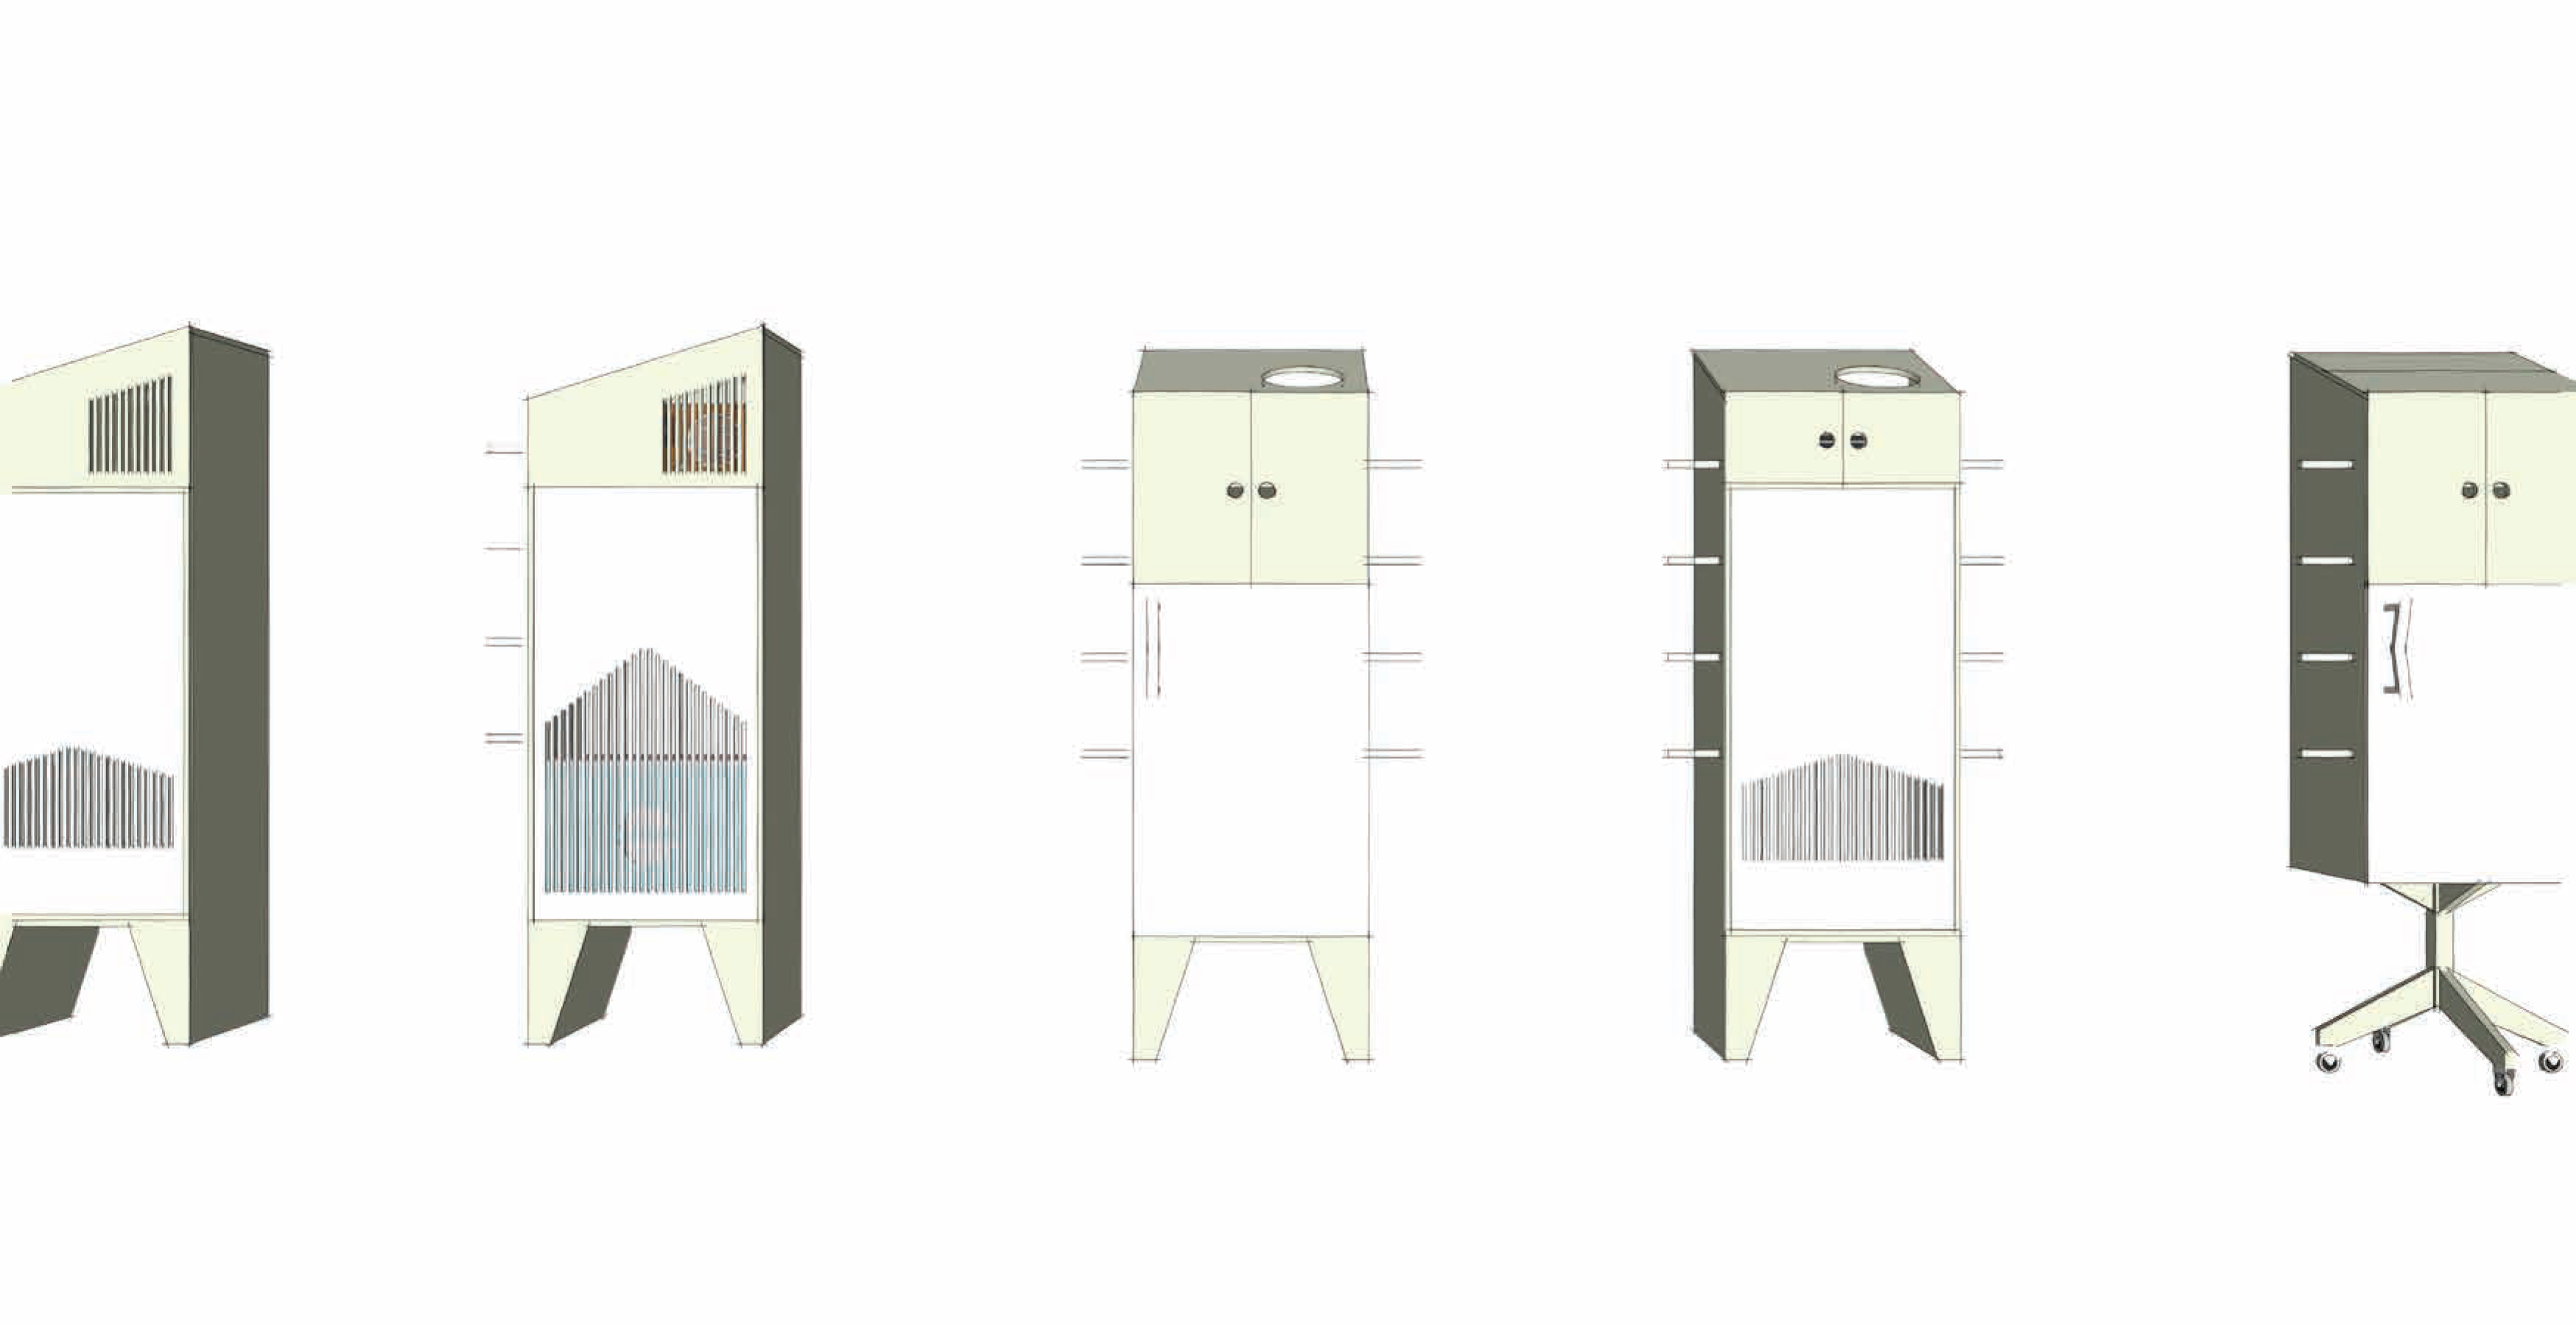 Cupboard design sketches, Ida Martin, 2015